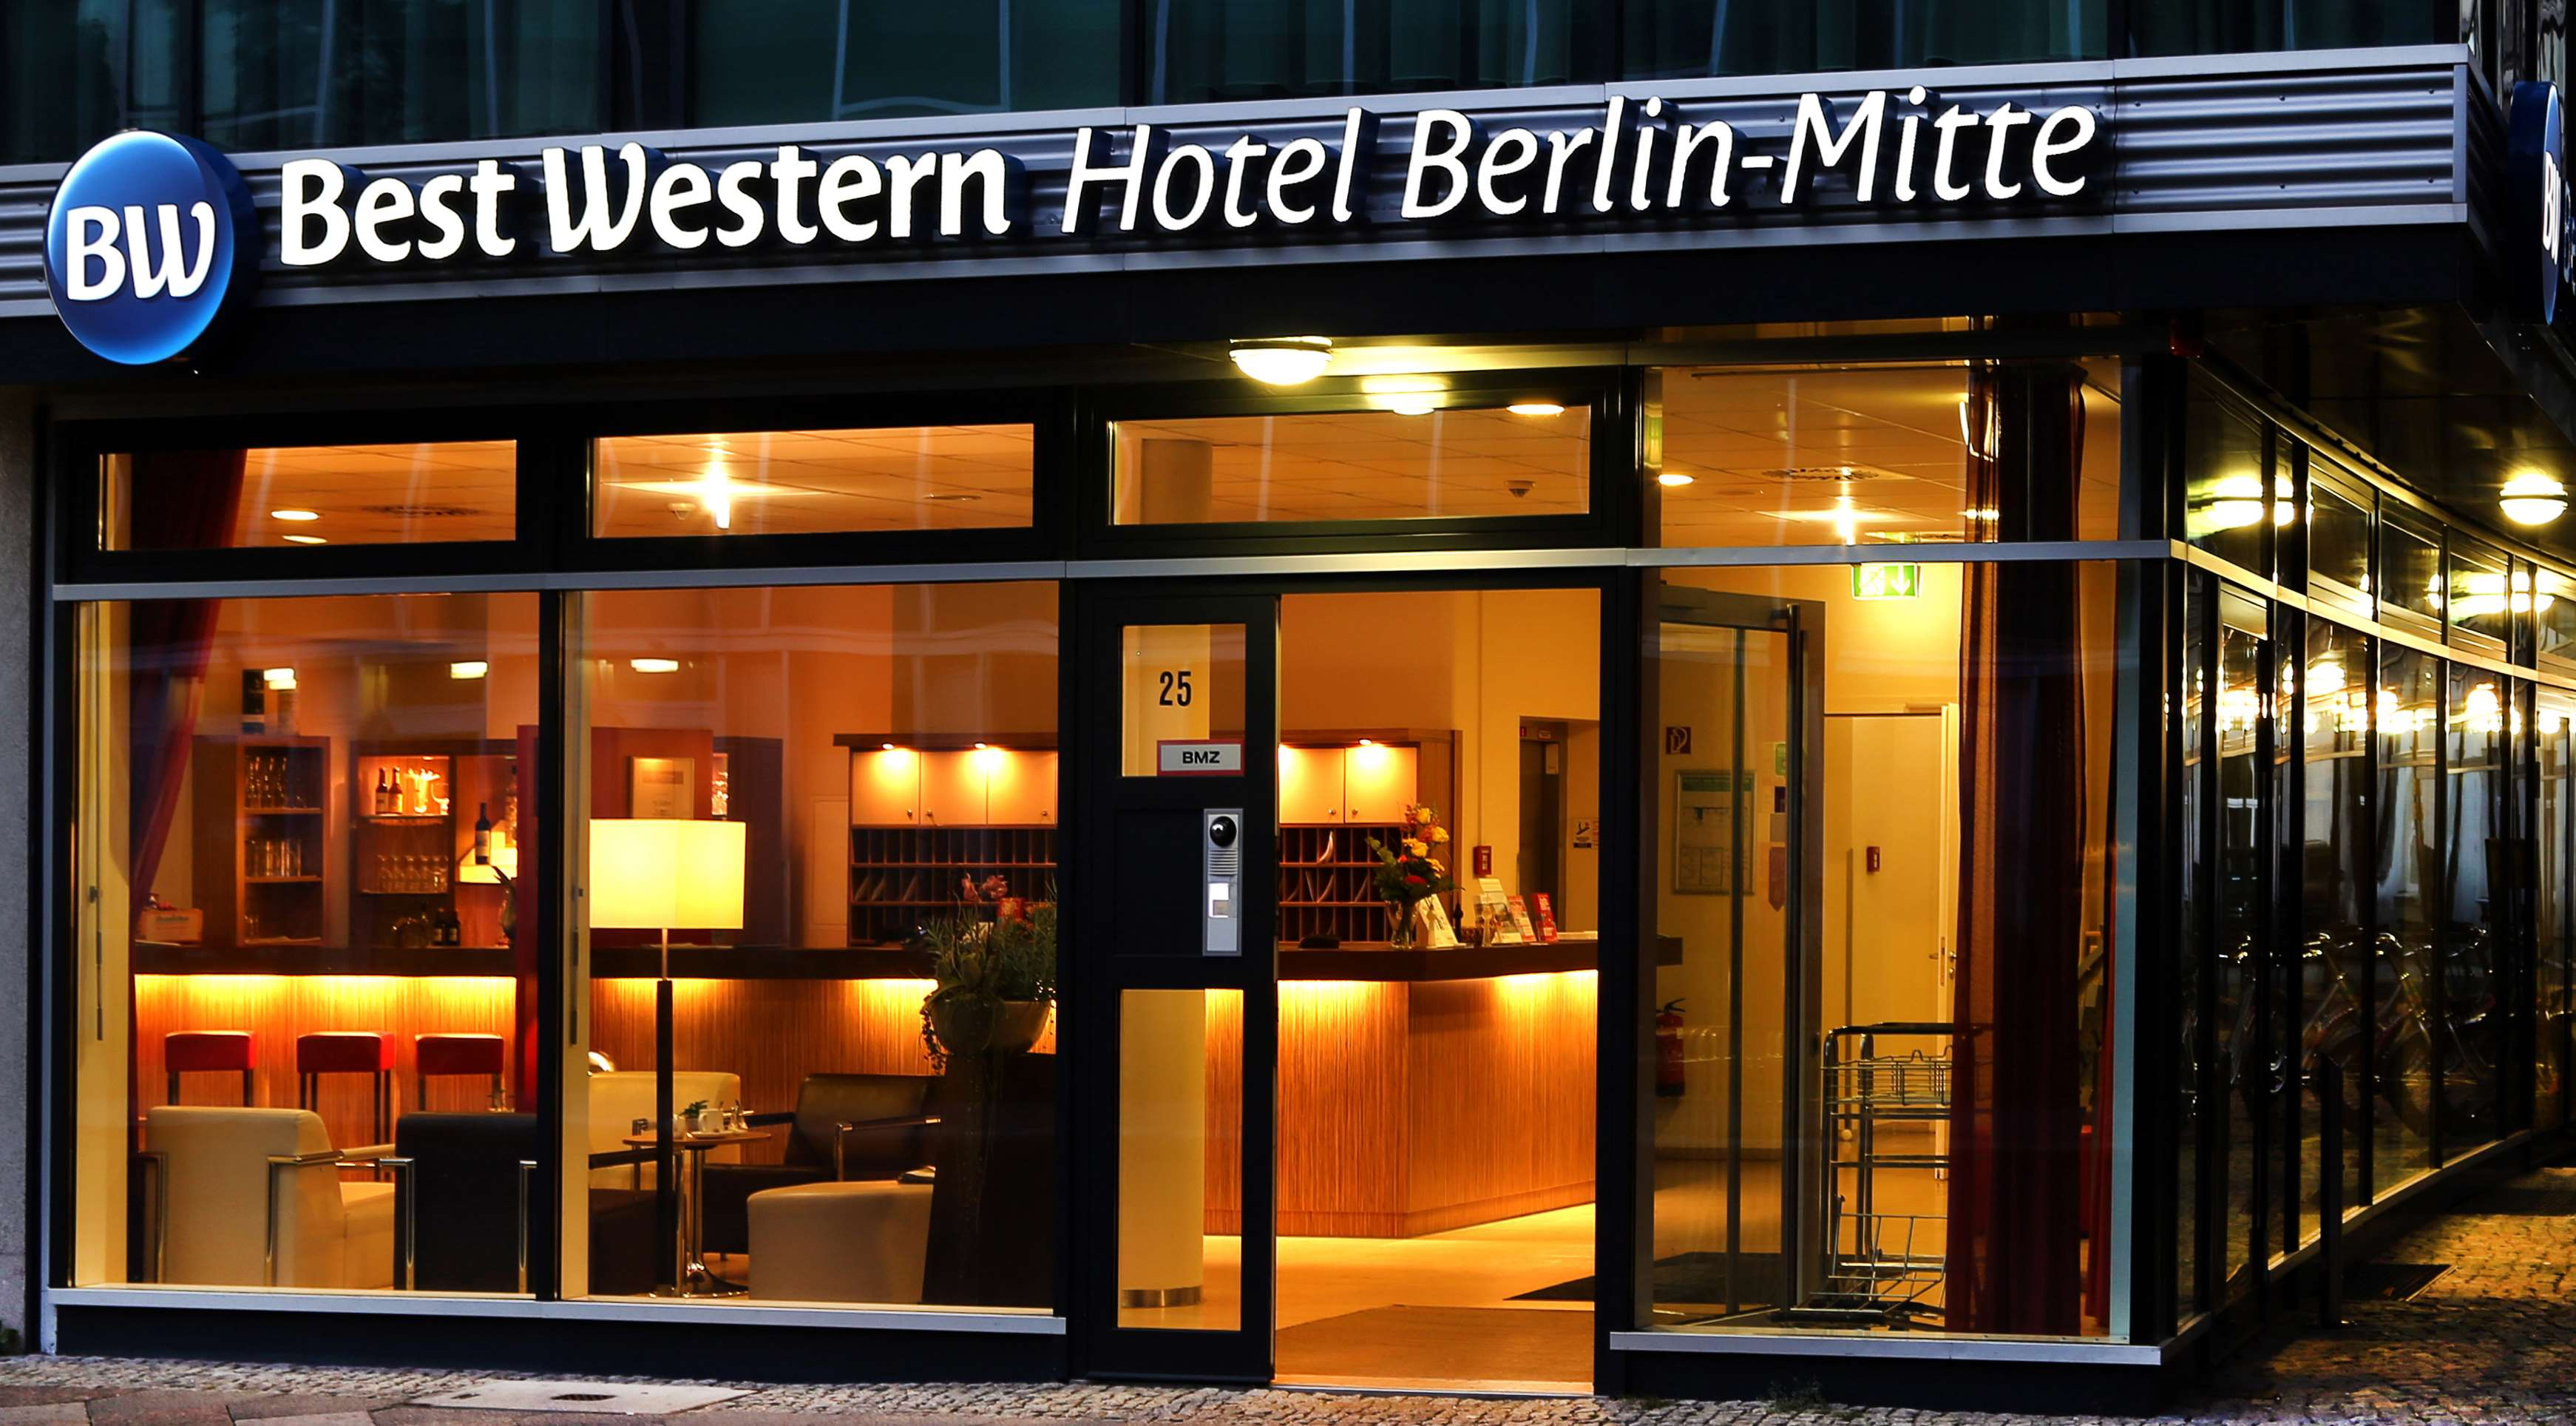 best western hotel berlin mitte hotels hotels restaurants berlin deutschland tel. Black Bedroom Furniture Sets. Home Design Ideas